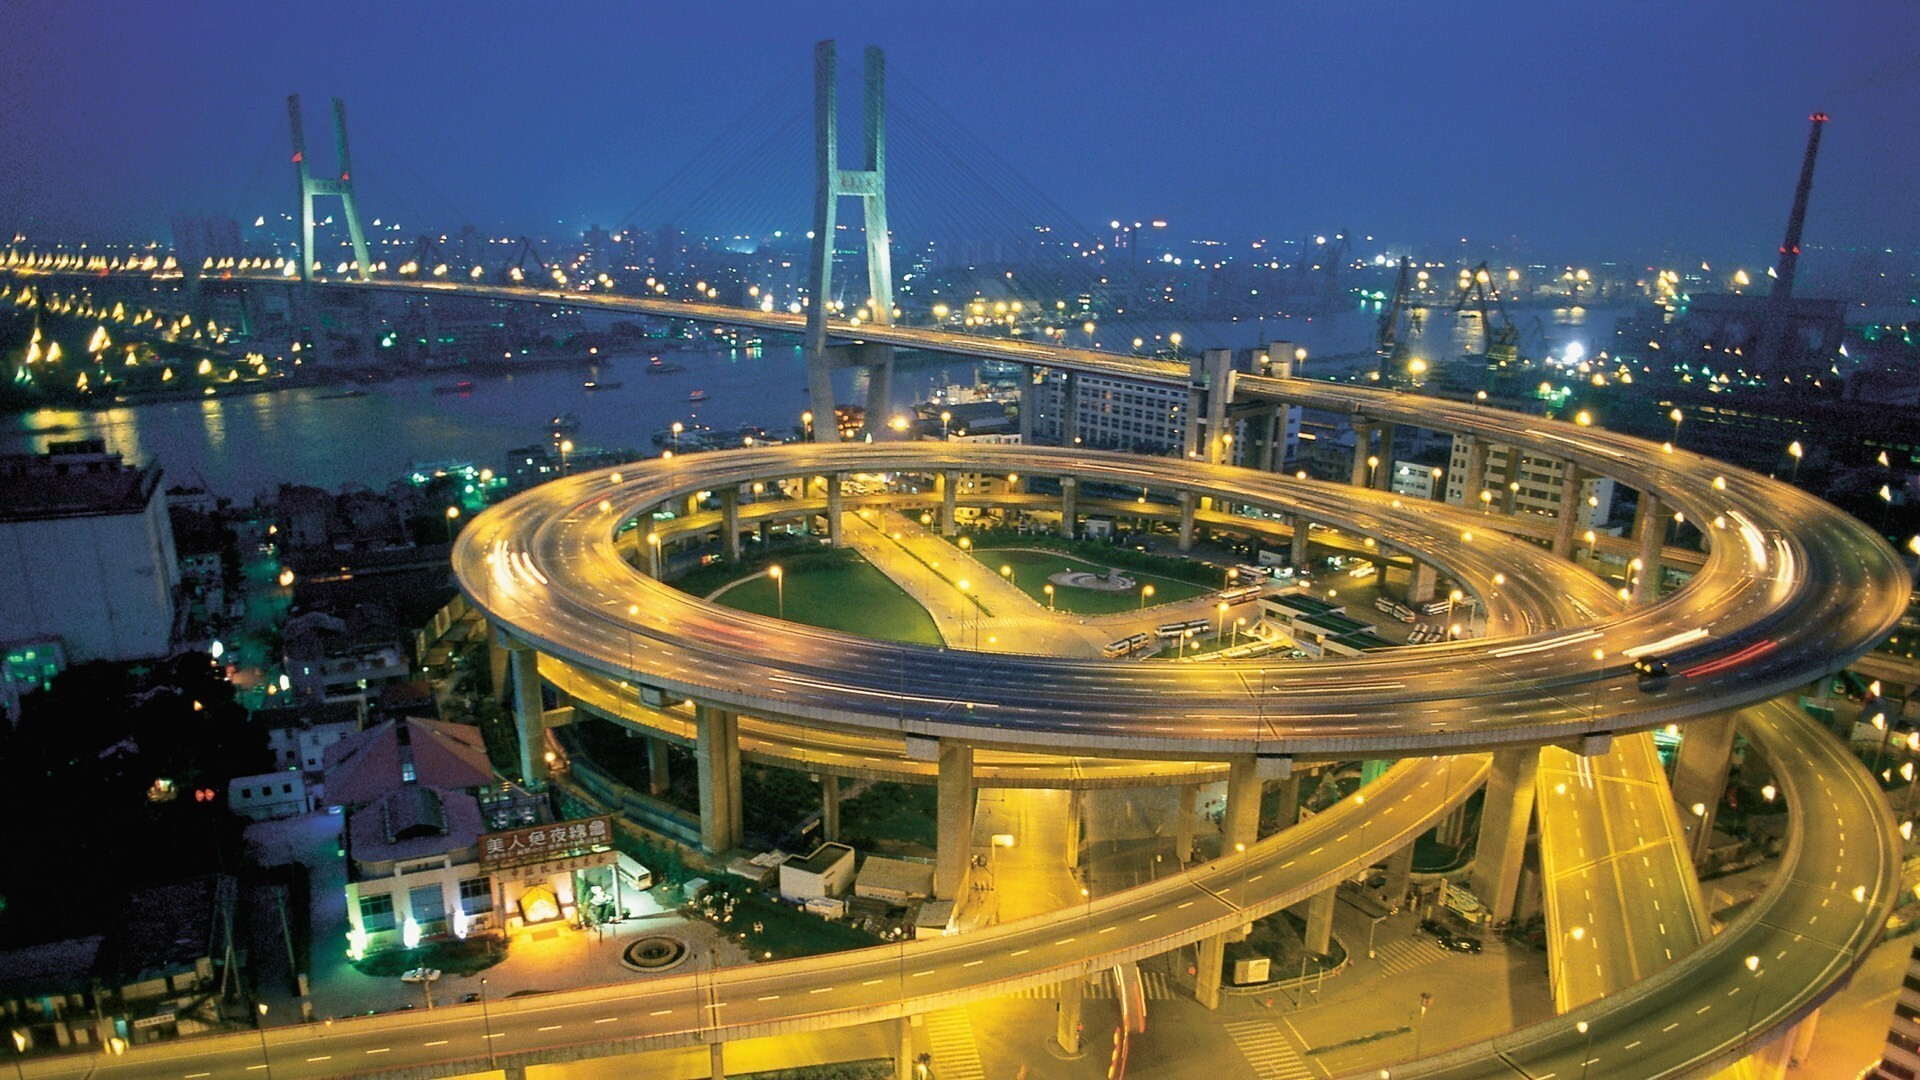 night look of nanpu bridge and spiral road in china country hd